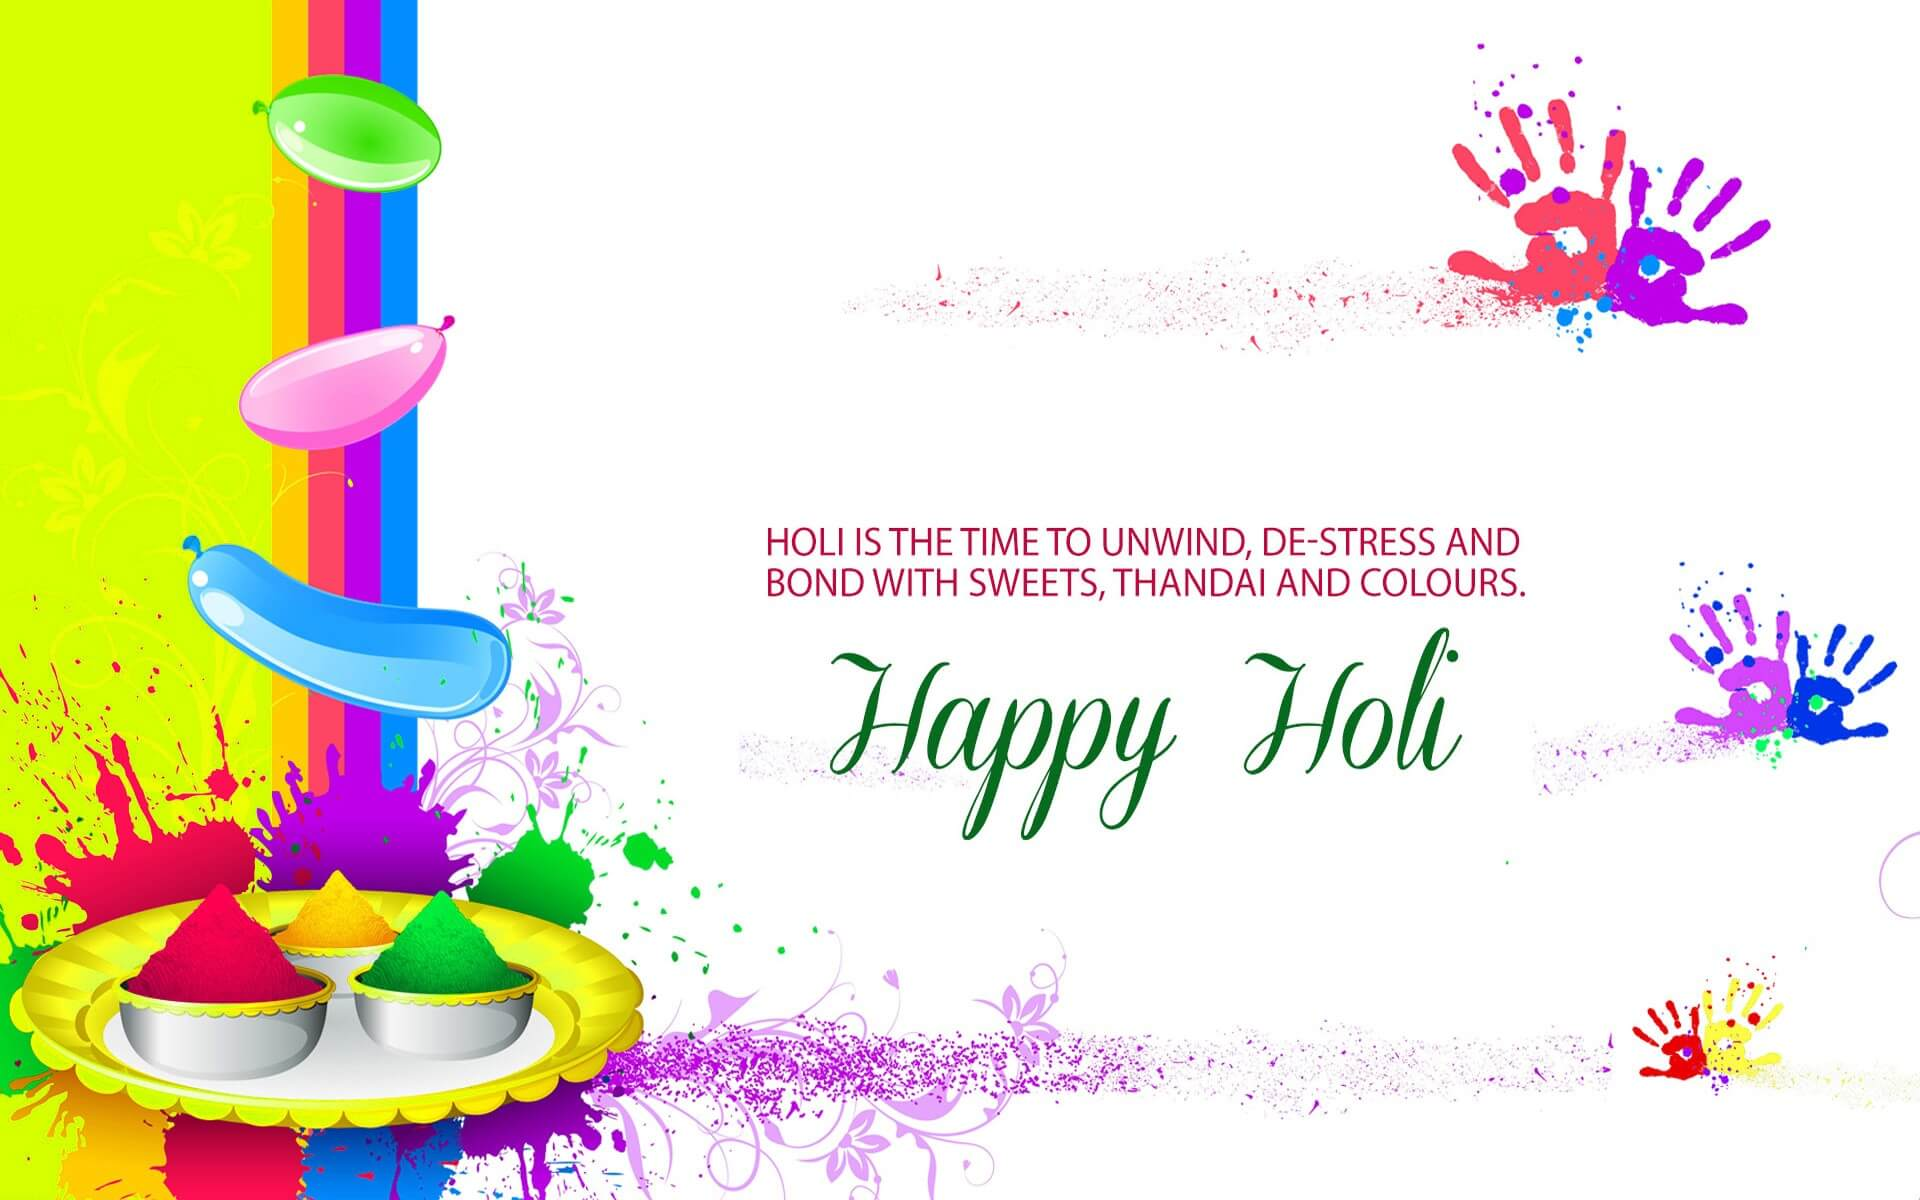 happy holi messages, wishes, quotes, sms